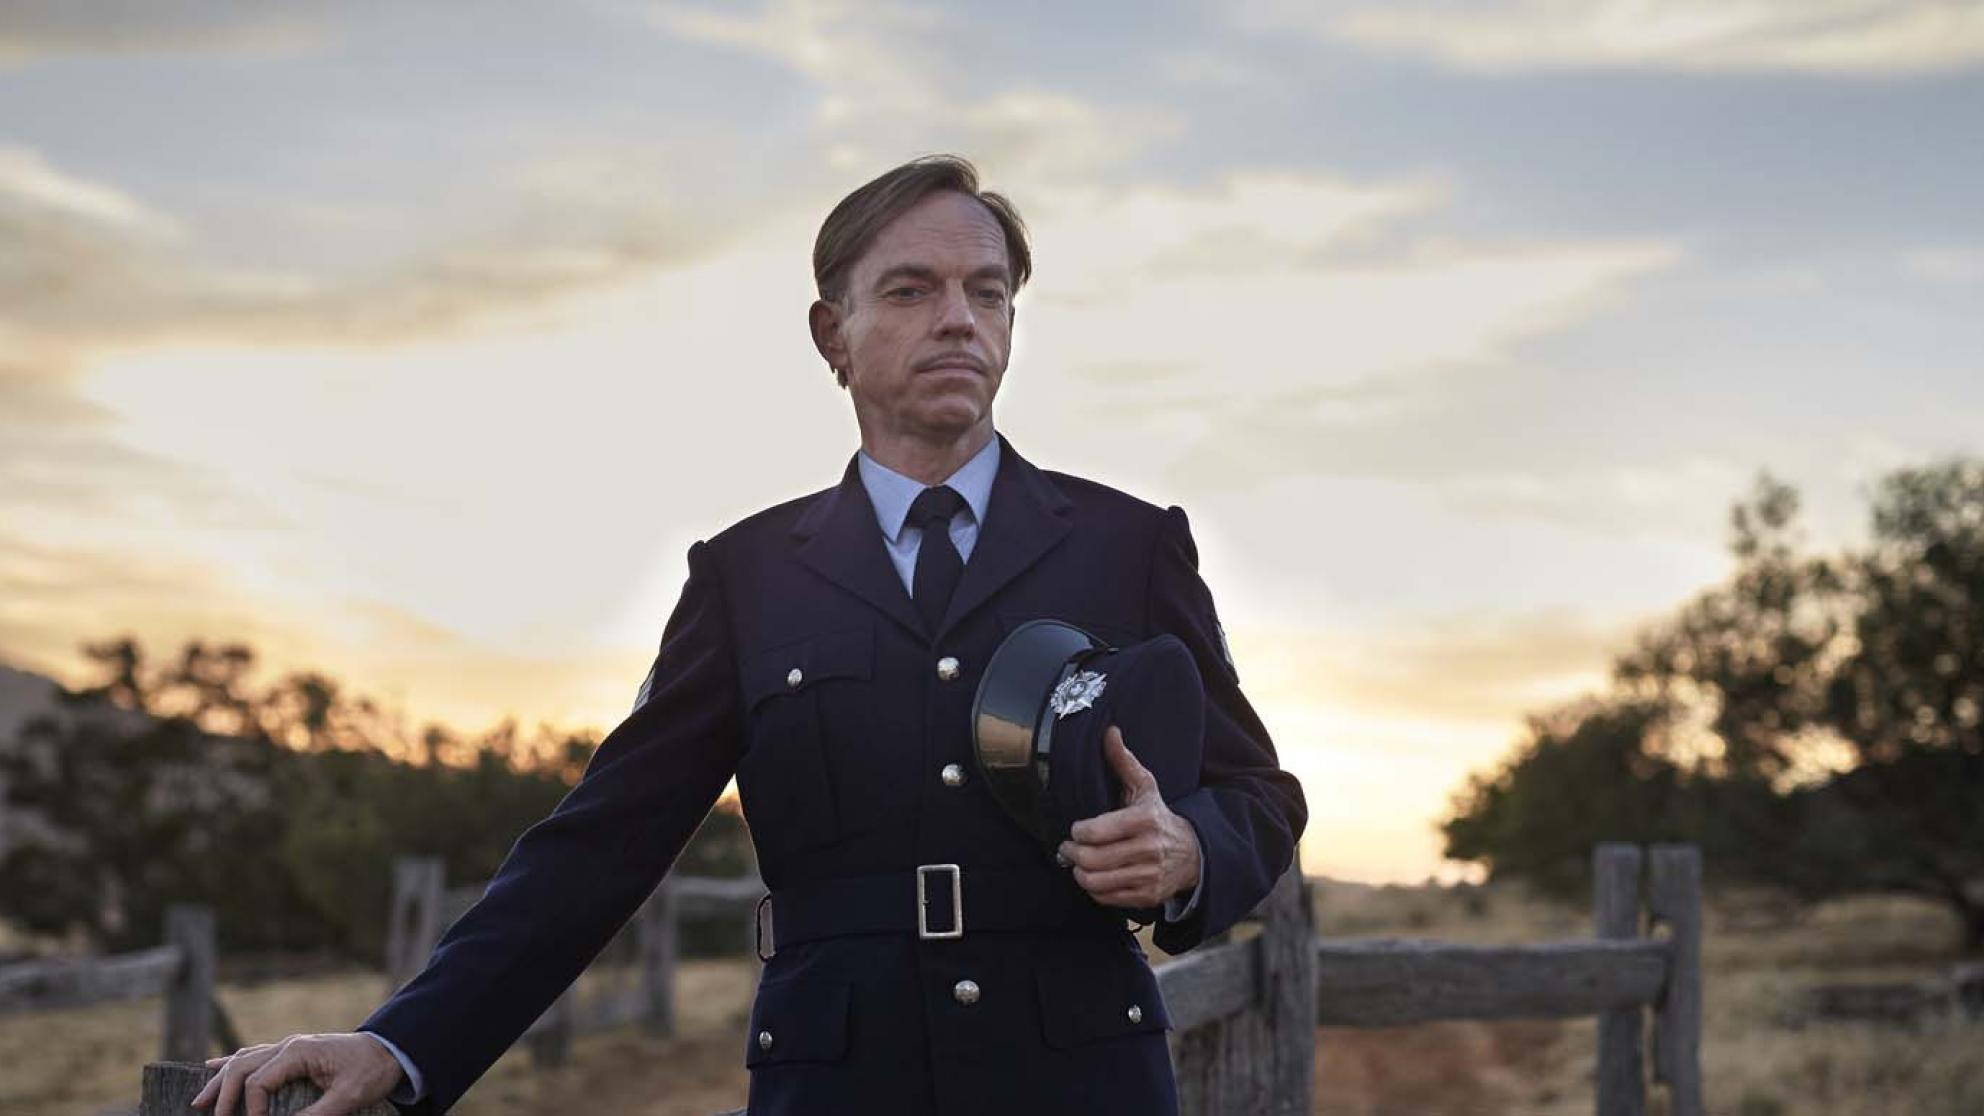 Hugo Weaving as a country town police officer in a still from the film The Dressmaker